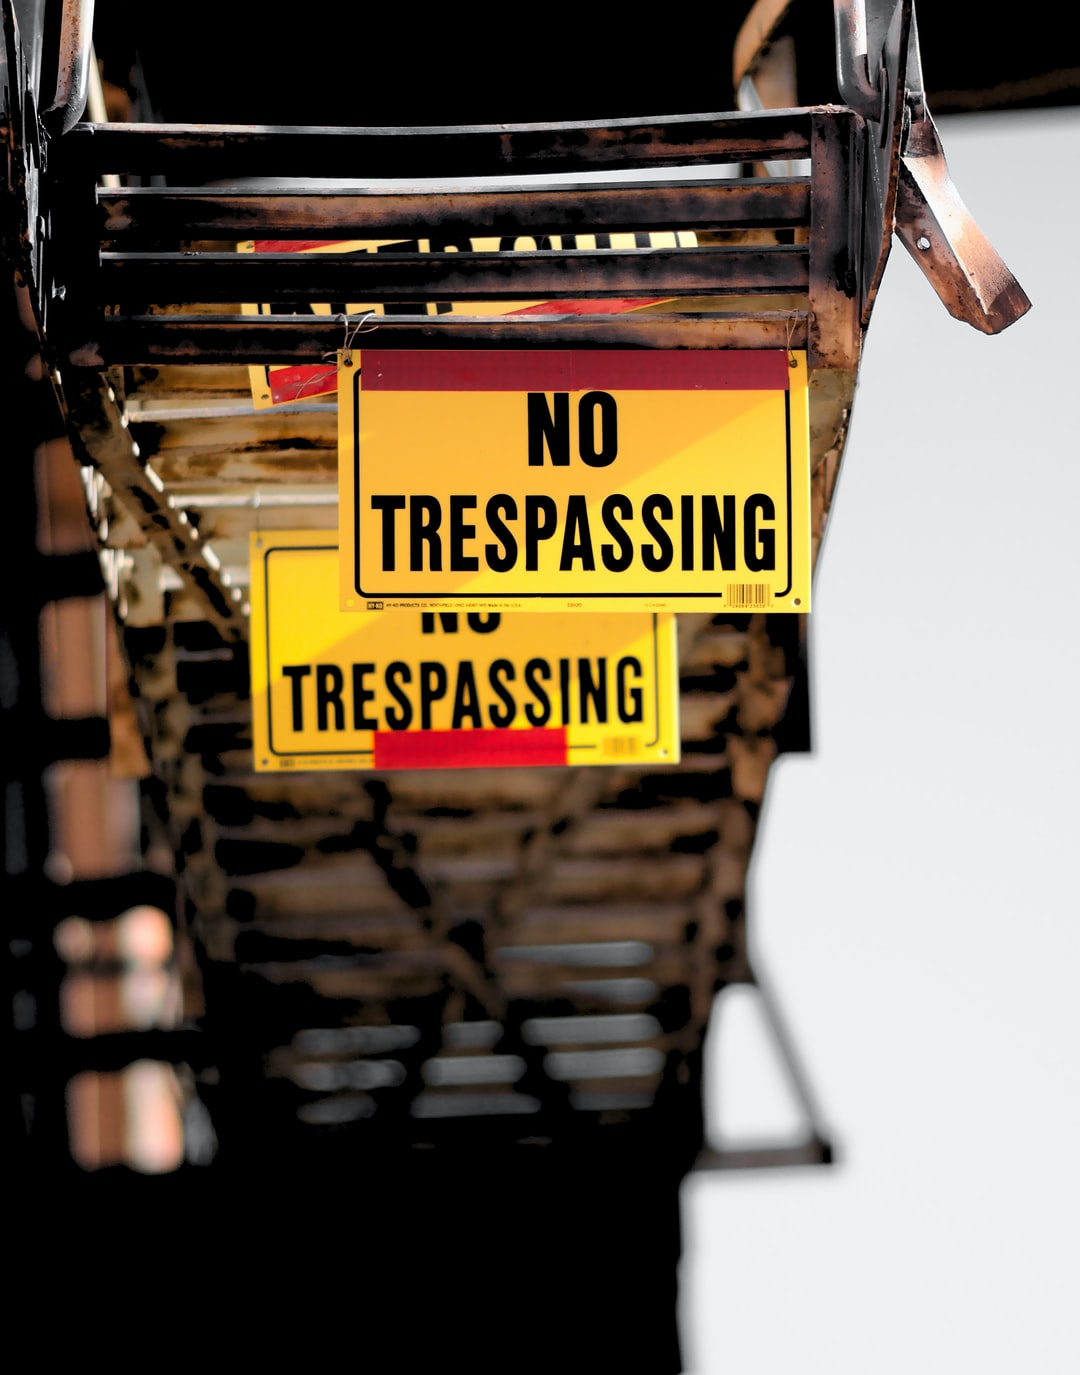 These NO TRESPASSING signs are hanging from a fire escape on a downtown building.